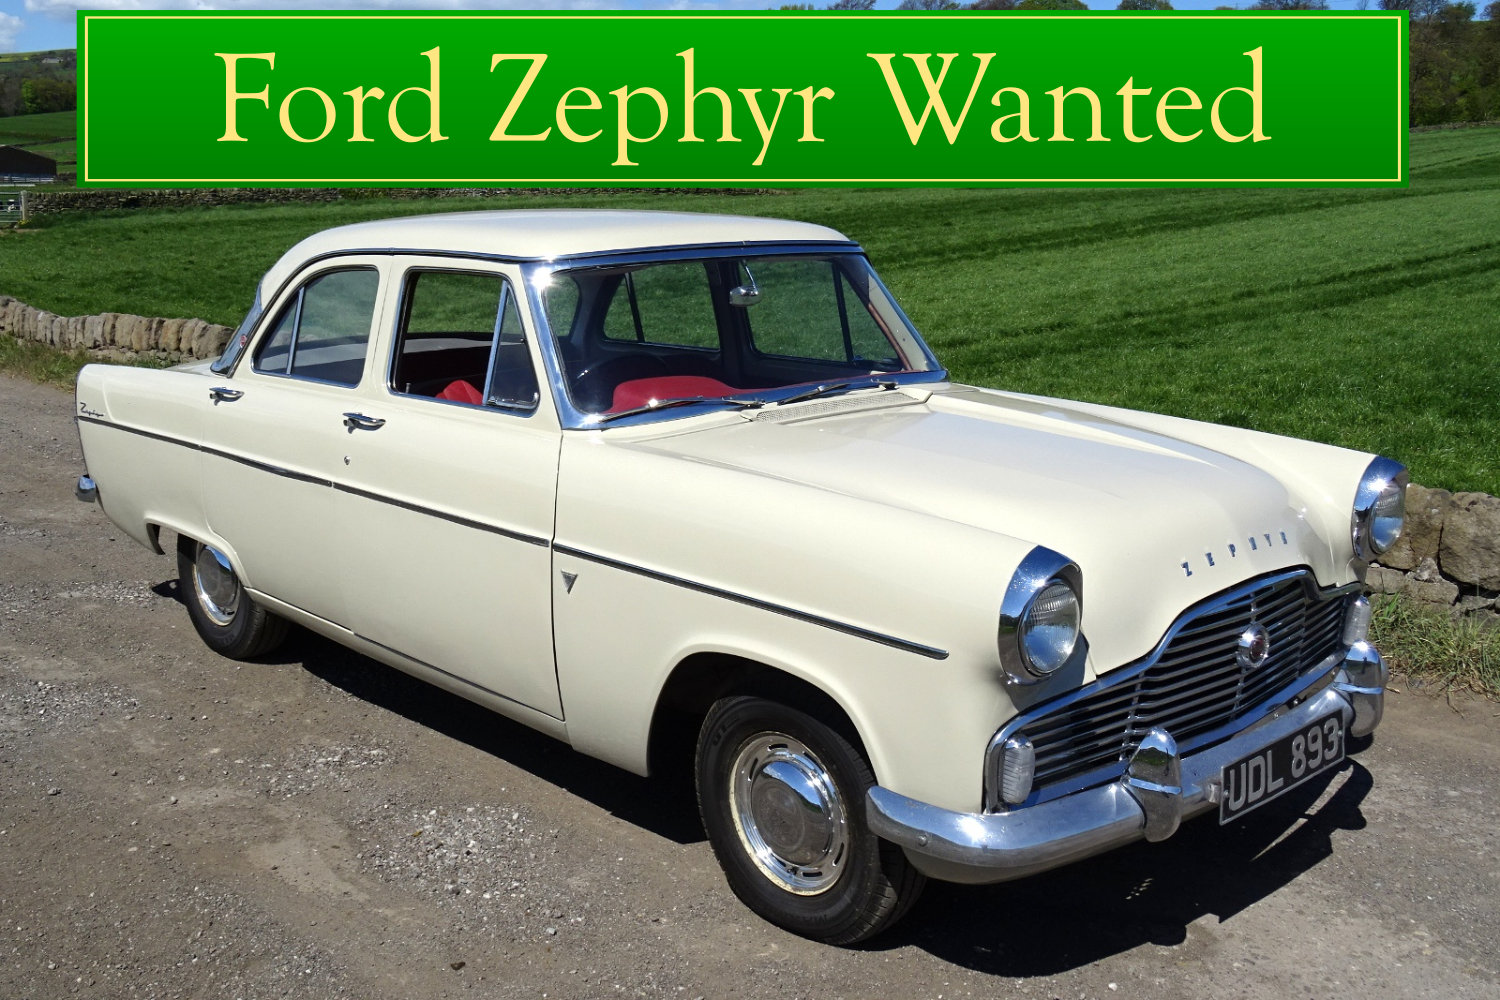 FORD ZODIAC MK1 WANTED, CLASSIC CARS WANTED, INSTANT PAYMENT Wanted (picture 4 of 6)